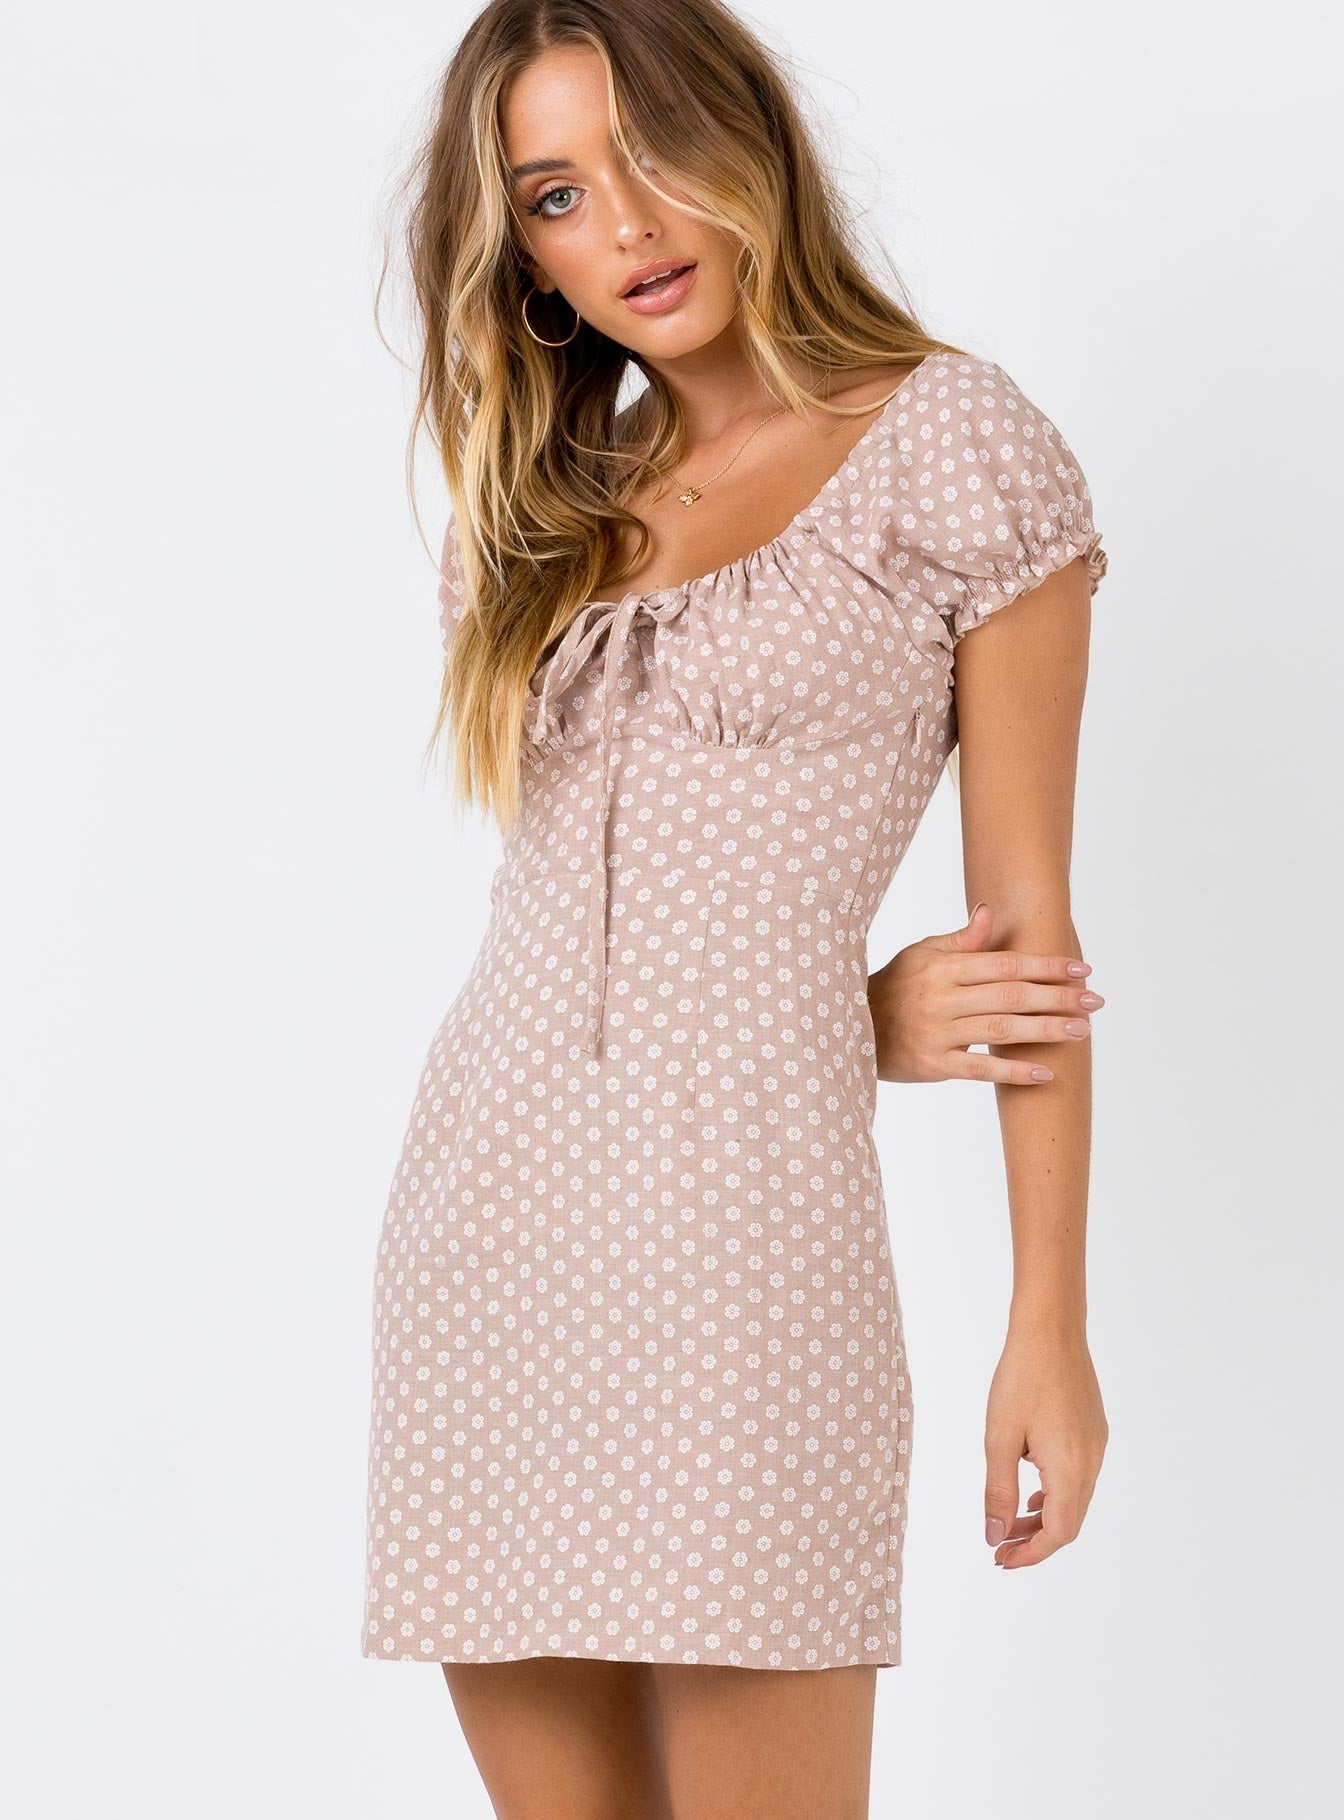 Cleo Mini Dress by Princess Polly